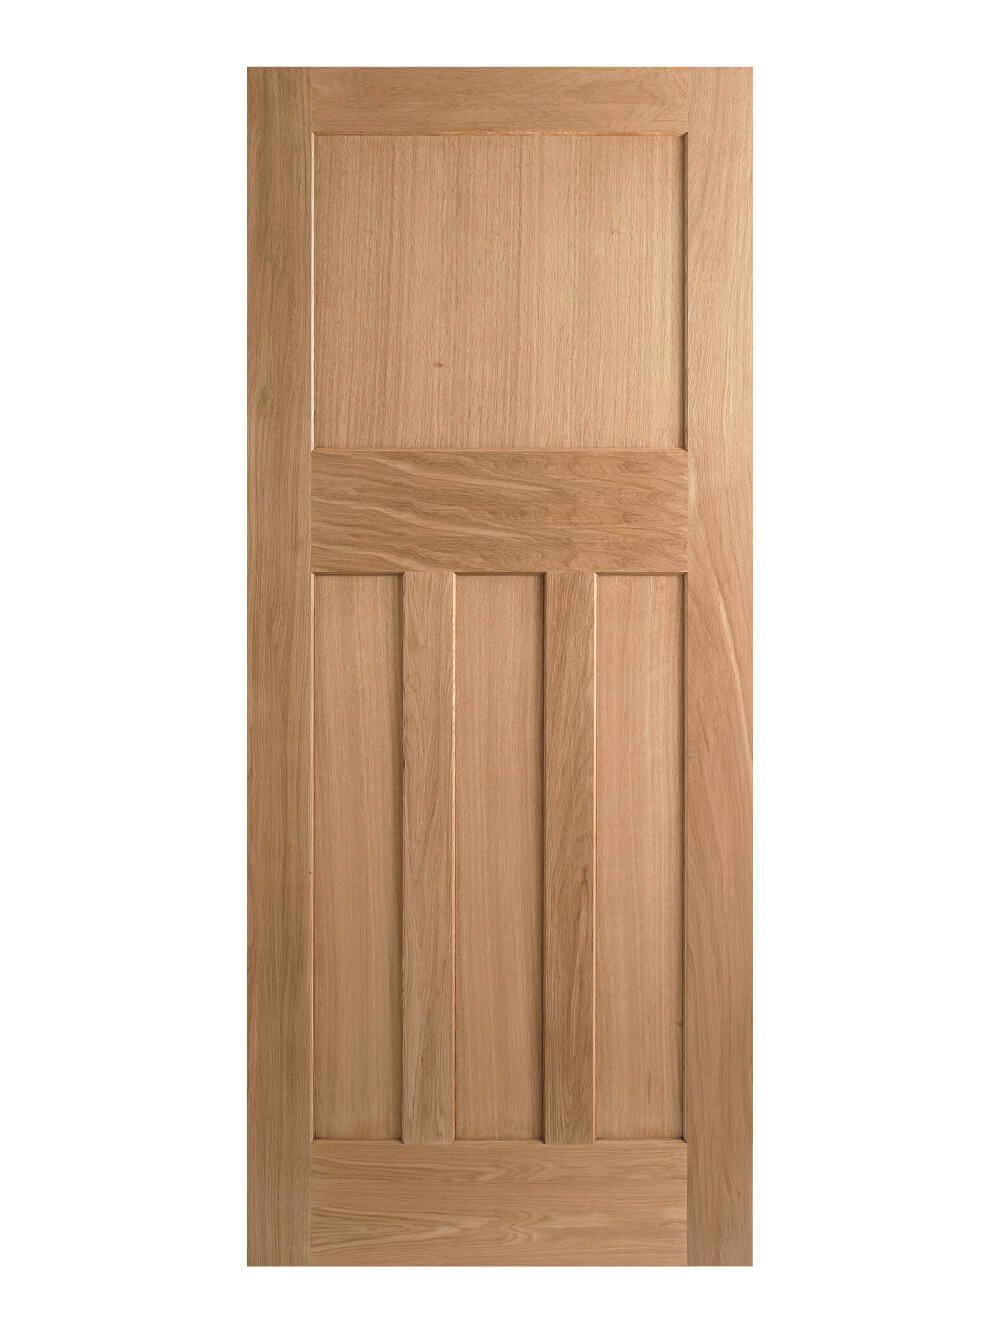 1930u0027s Oak 4 Panel Unfinished Internal Door  sc 1 st  Early Doors Ltd & 1930s Doors 1930u0027s Style Doors For Sale Online | Early Doors Ltd pezcame.com